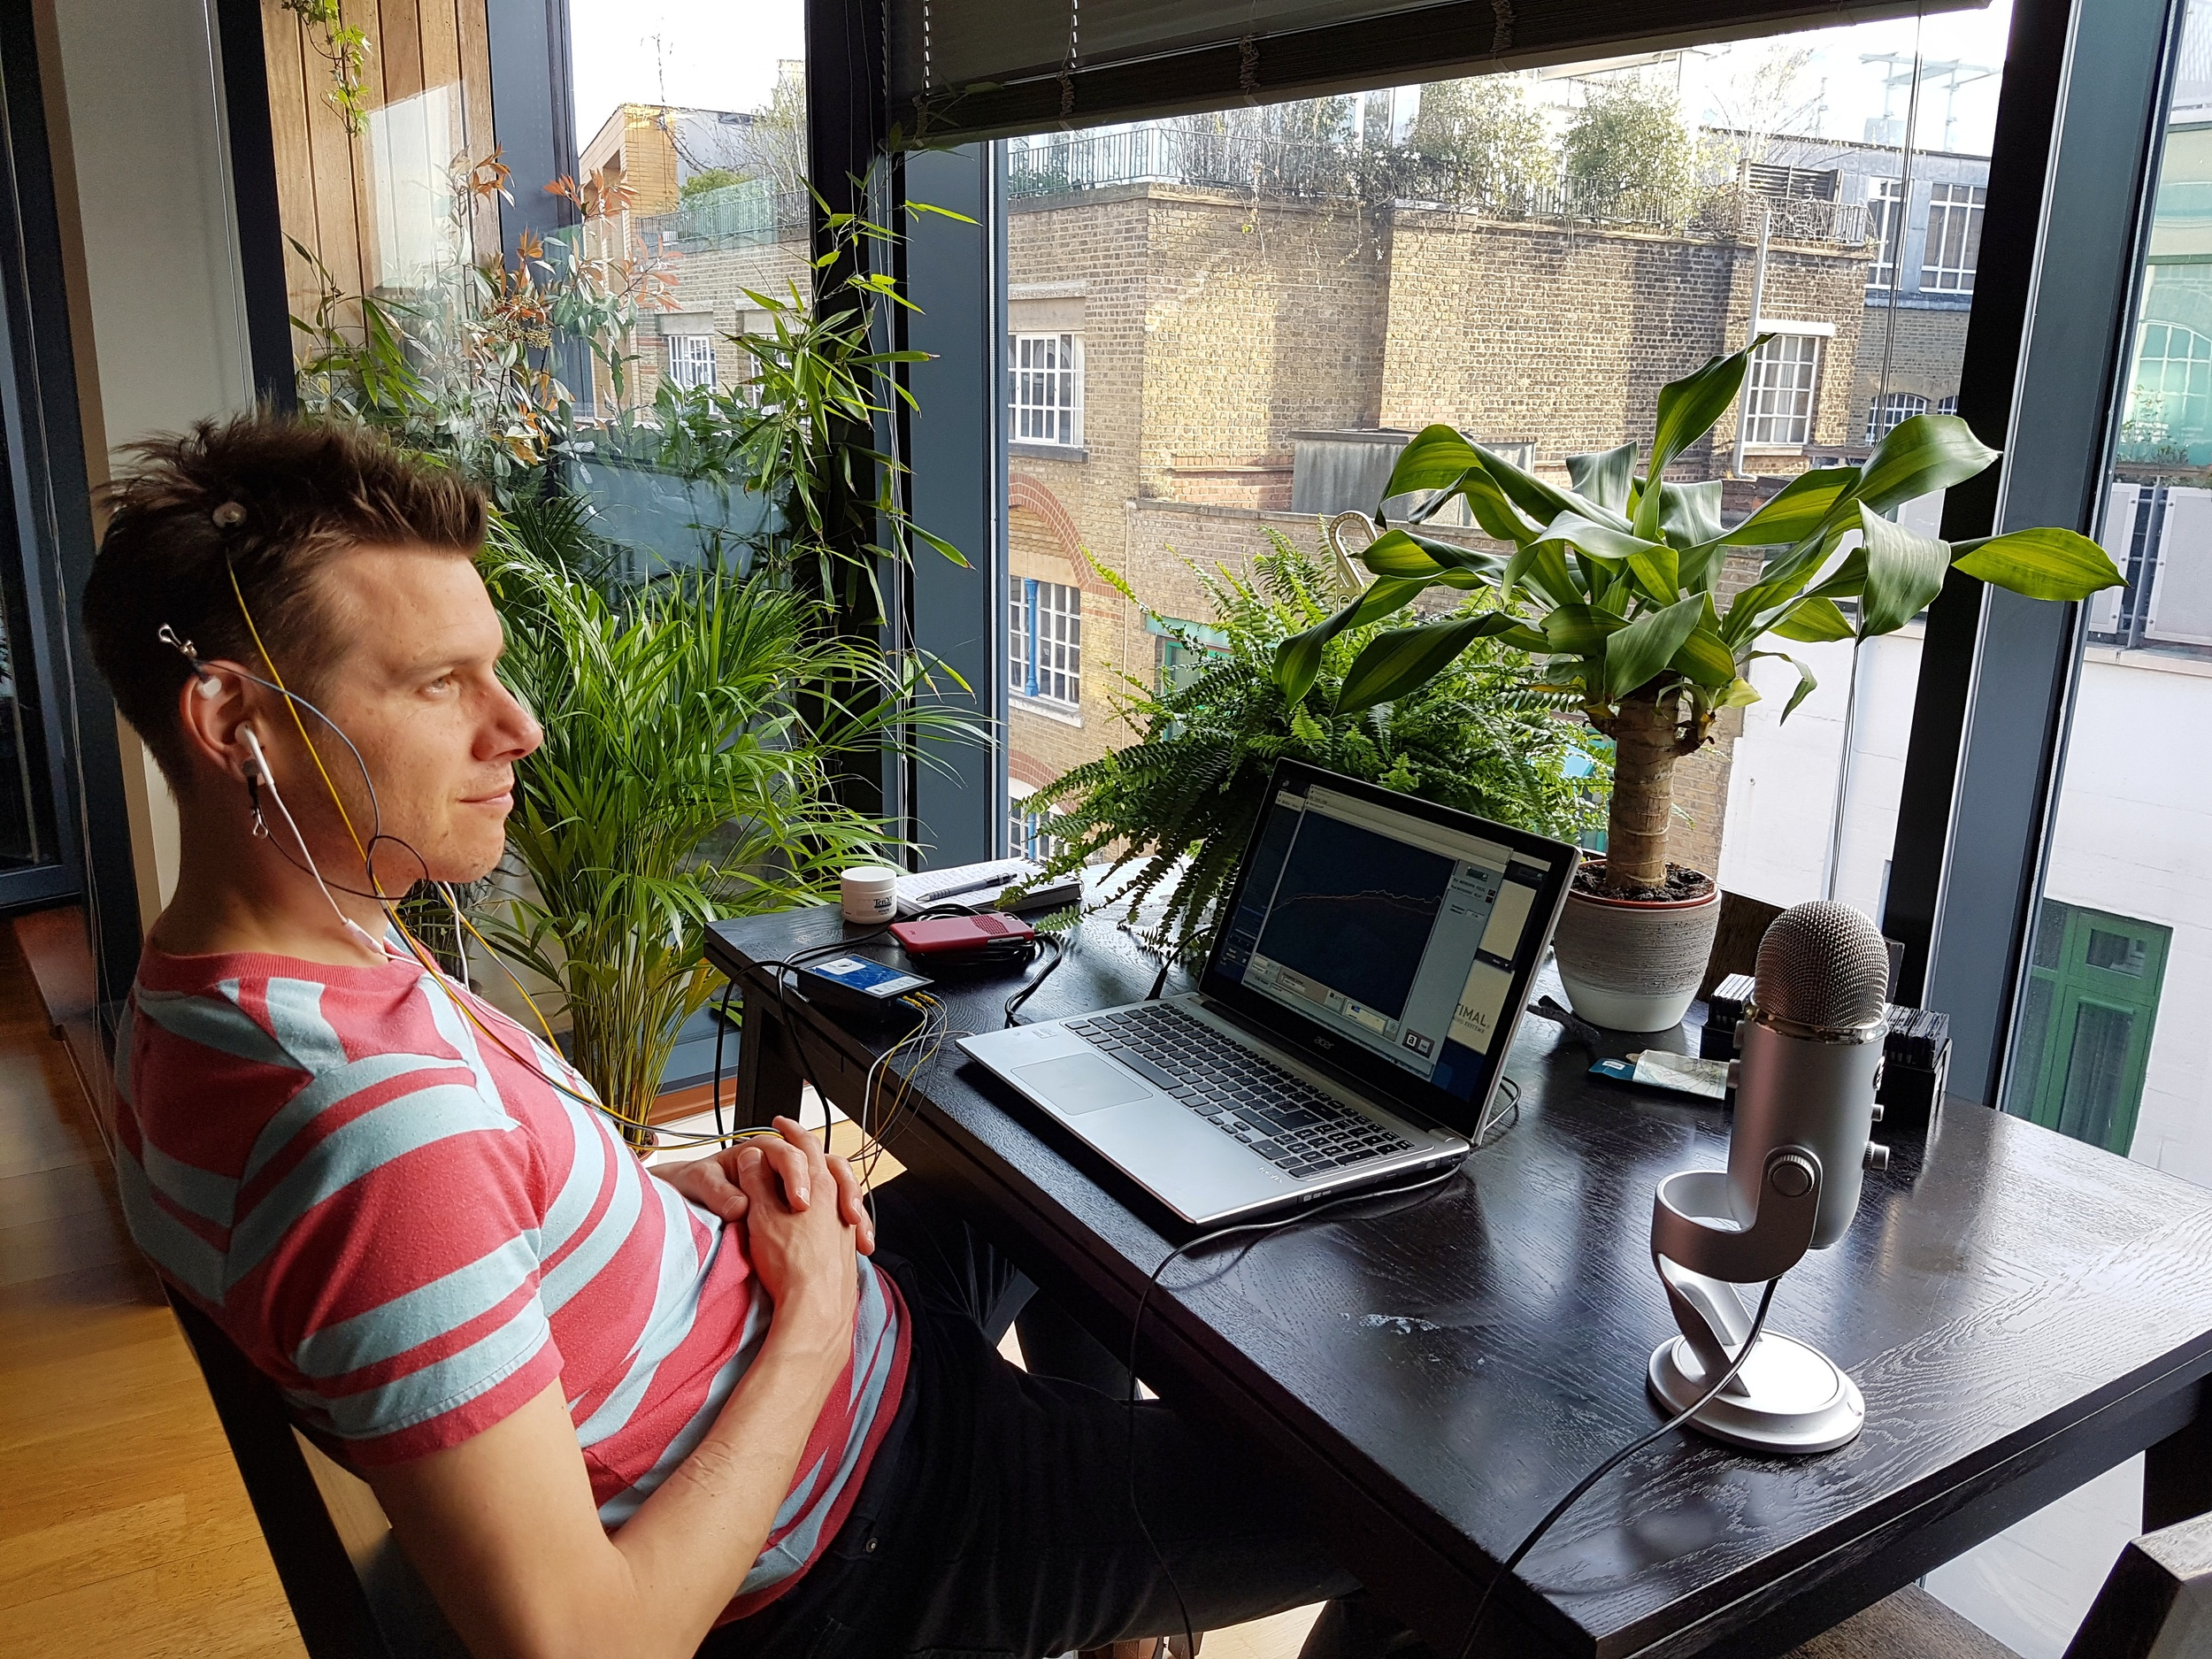 Tony Wri - Sky Sports News and Zestology podcast presenter getting an Optimal Feedback home visit.